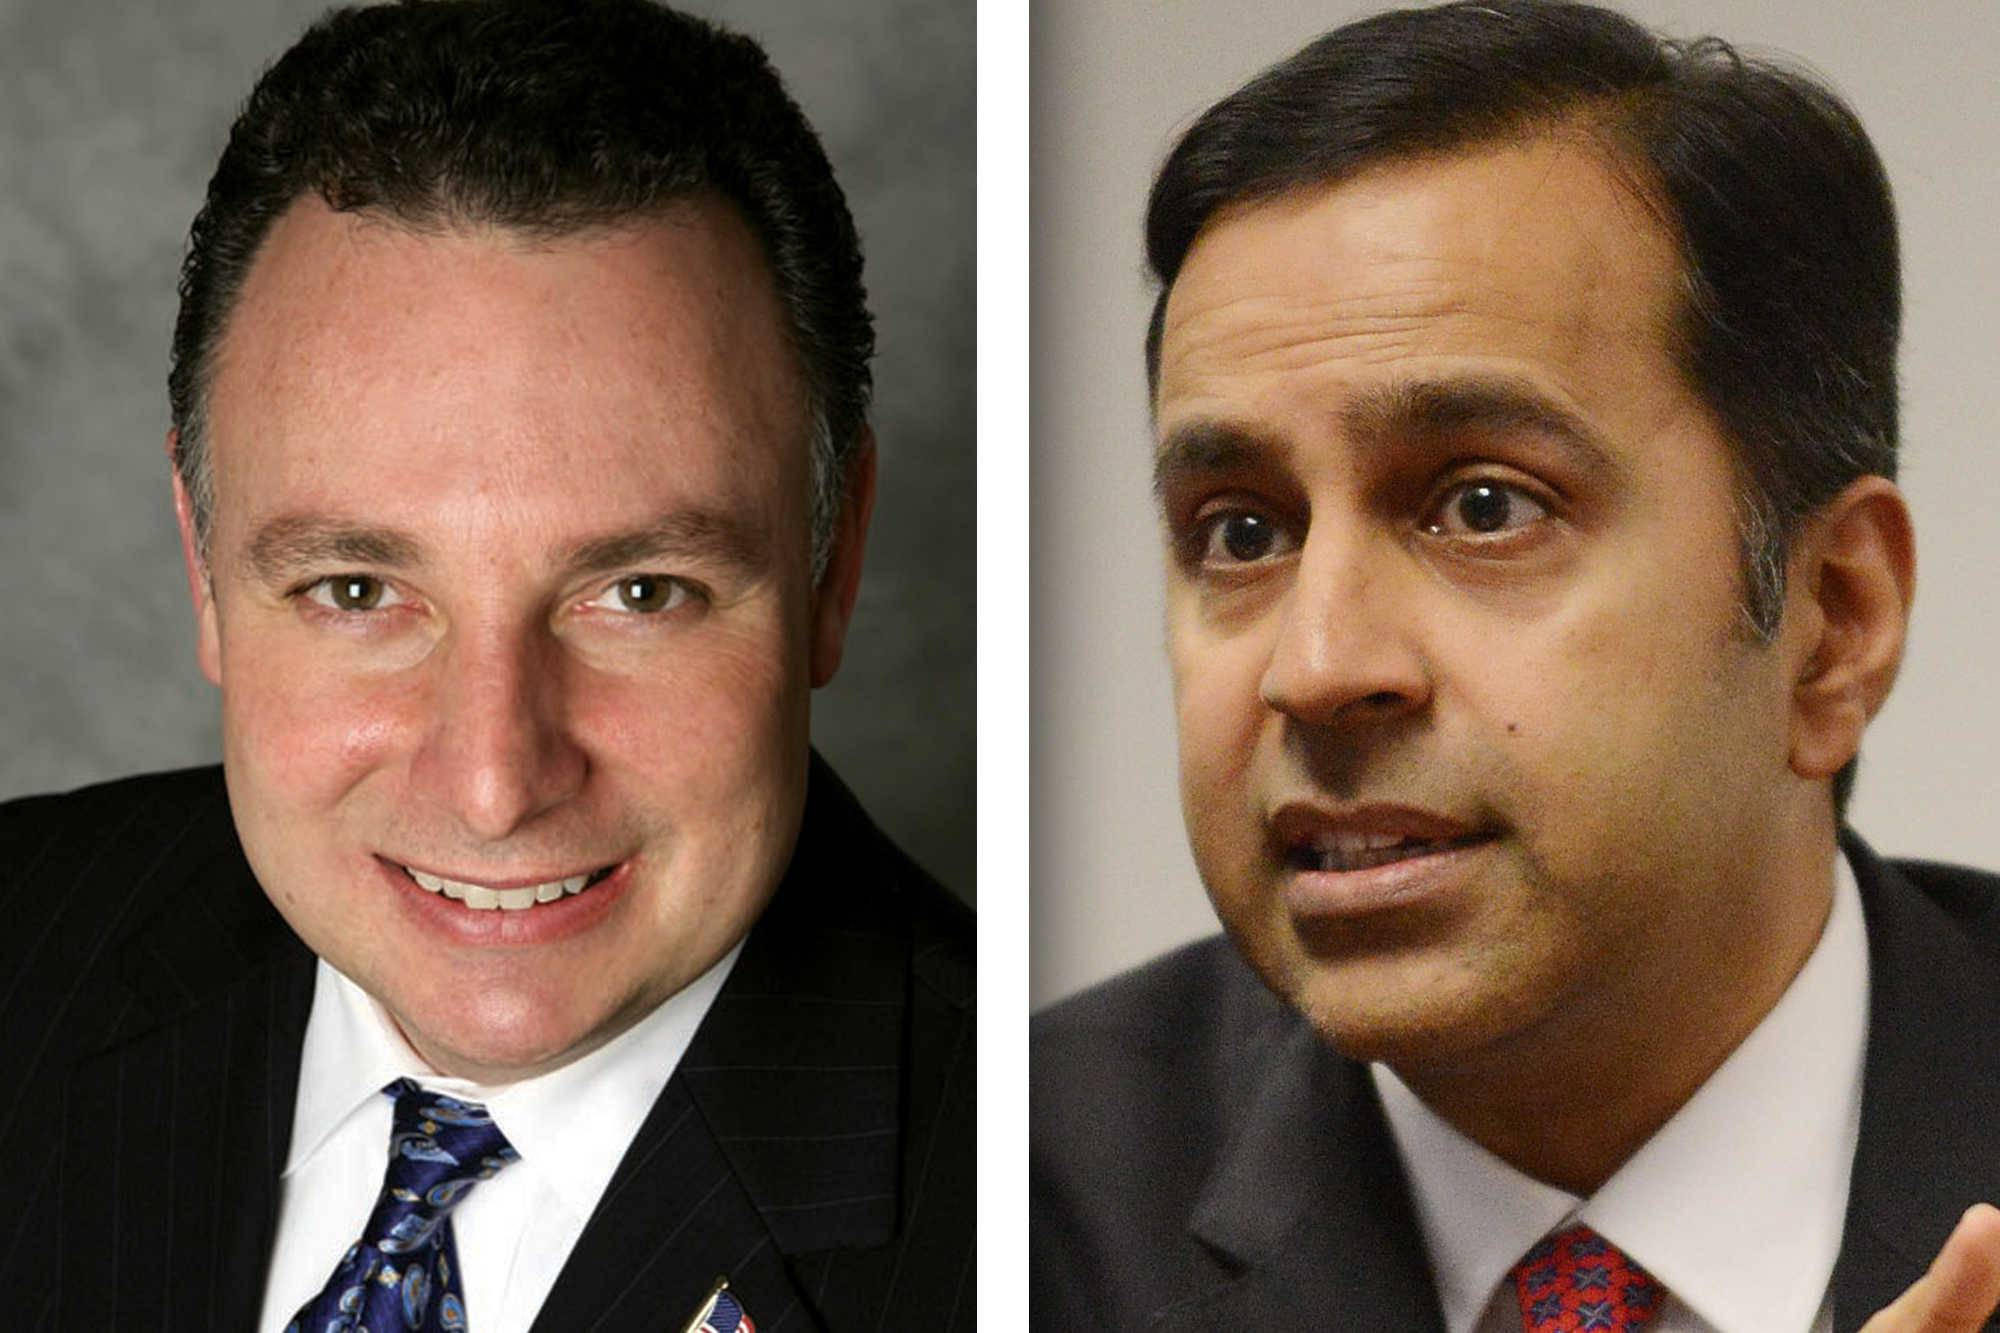 Republican Peter DiCianni of Elmhurst, left, and Democrat Raja Krishnamoorthi of Schaumburg are candidates for 8th Congressional District.